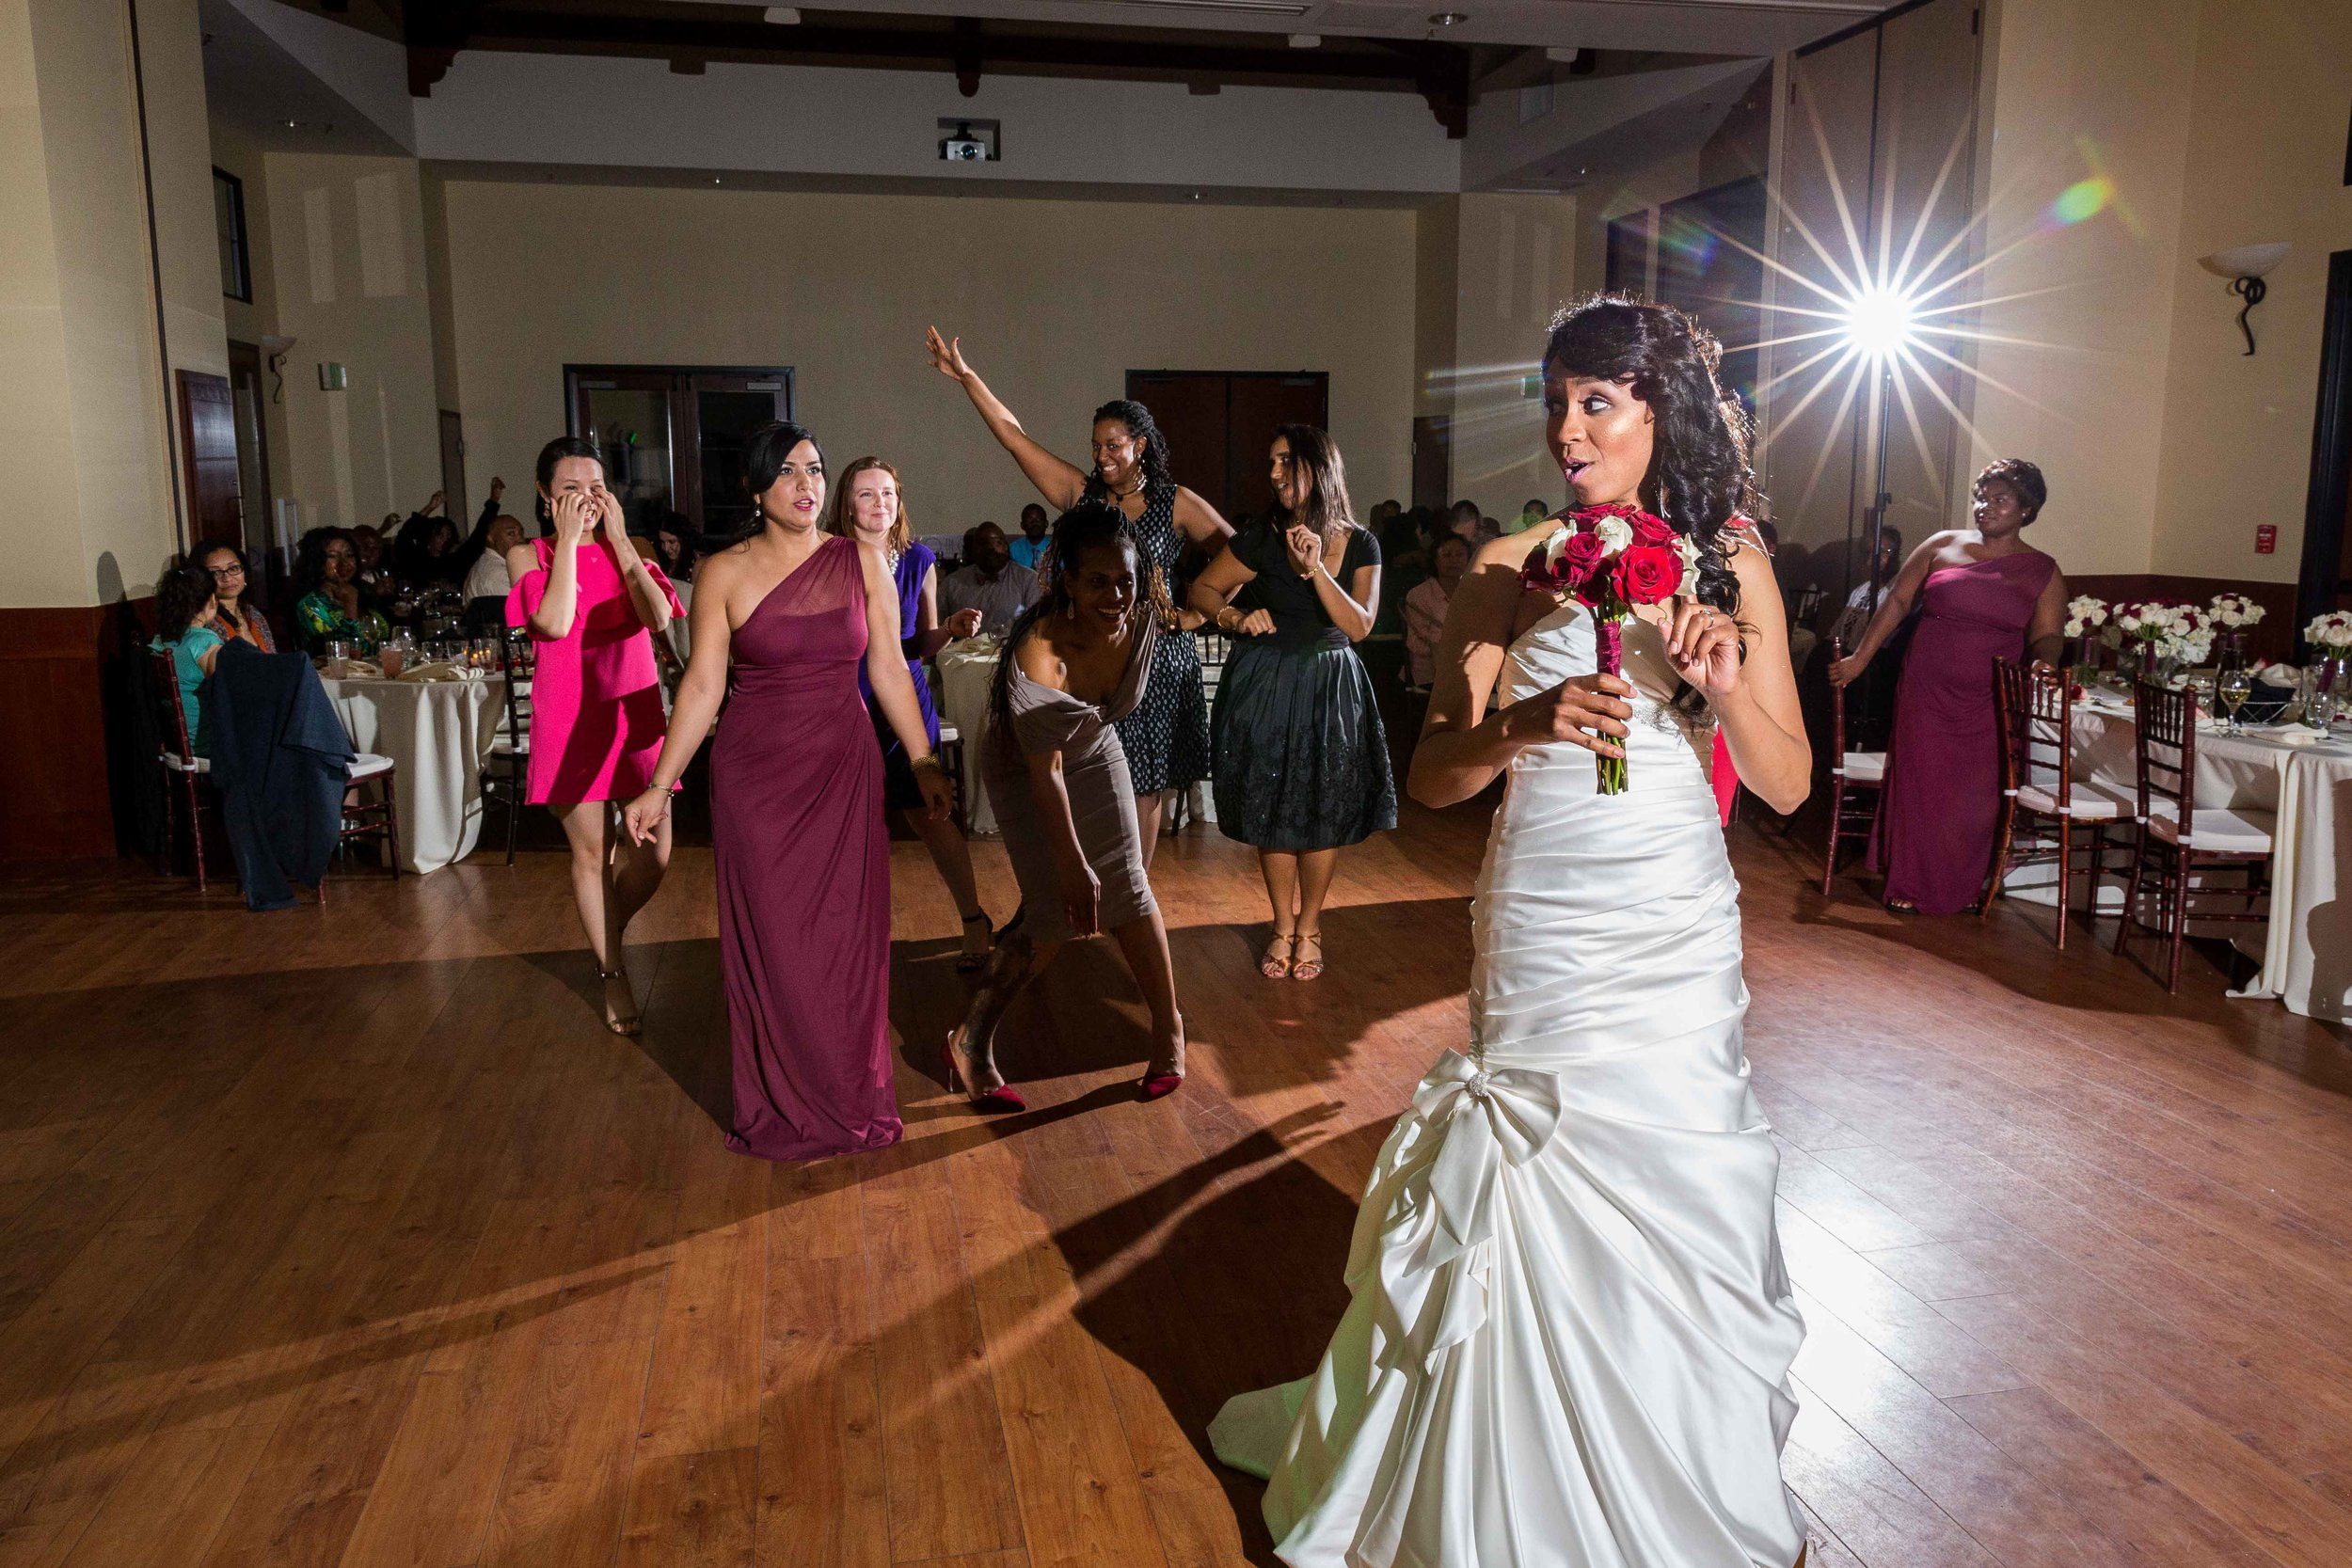 light. - Dark wedding venue or reception area? Don't worry, I bring professional lighting systems that will illuminate the scene.